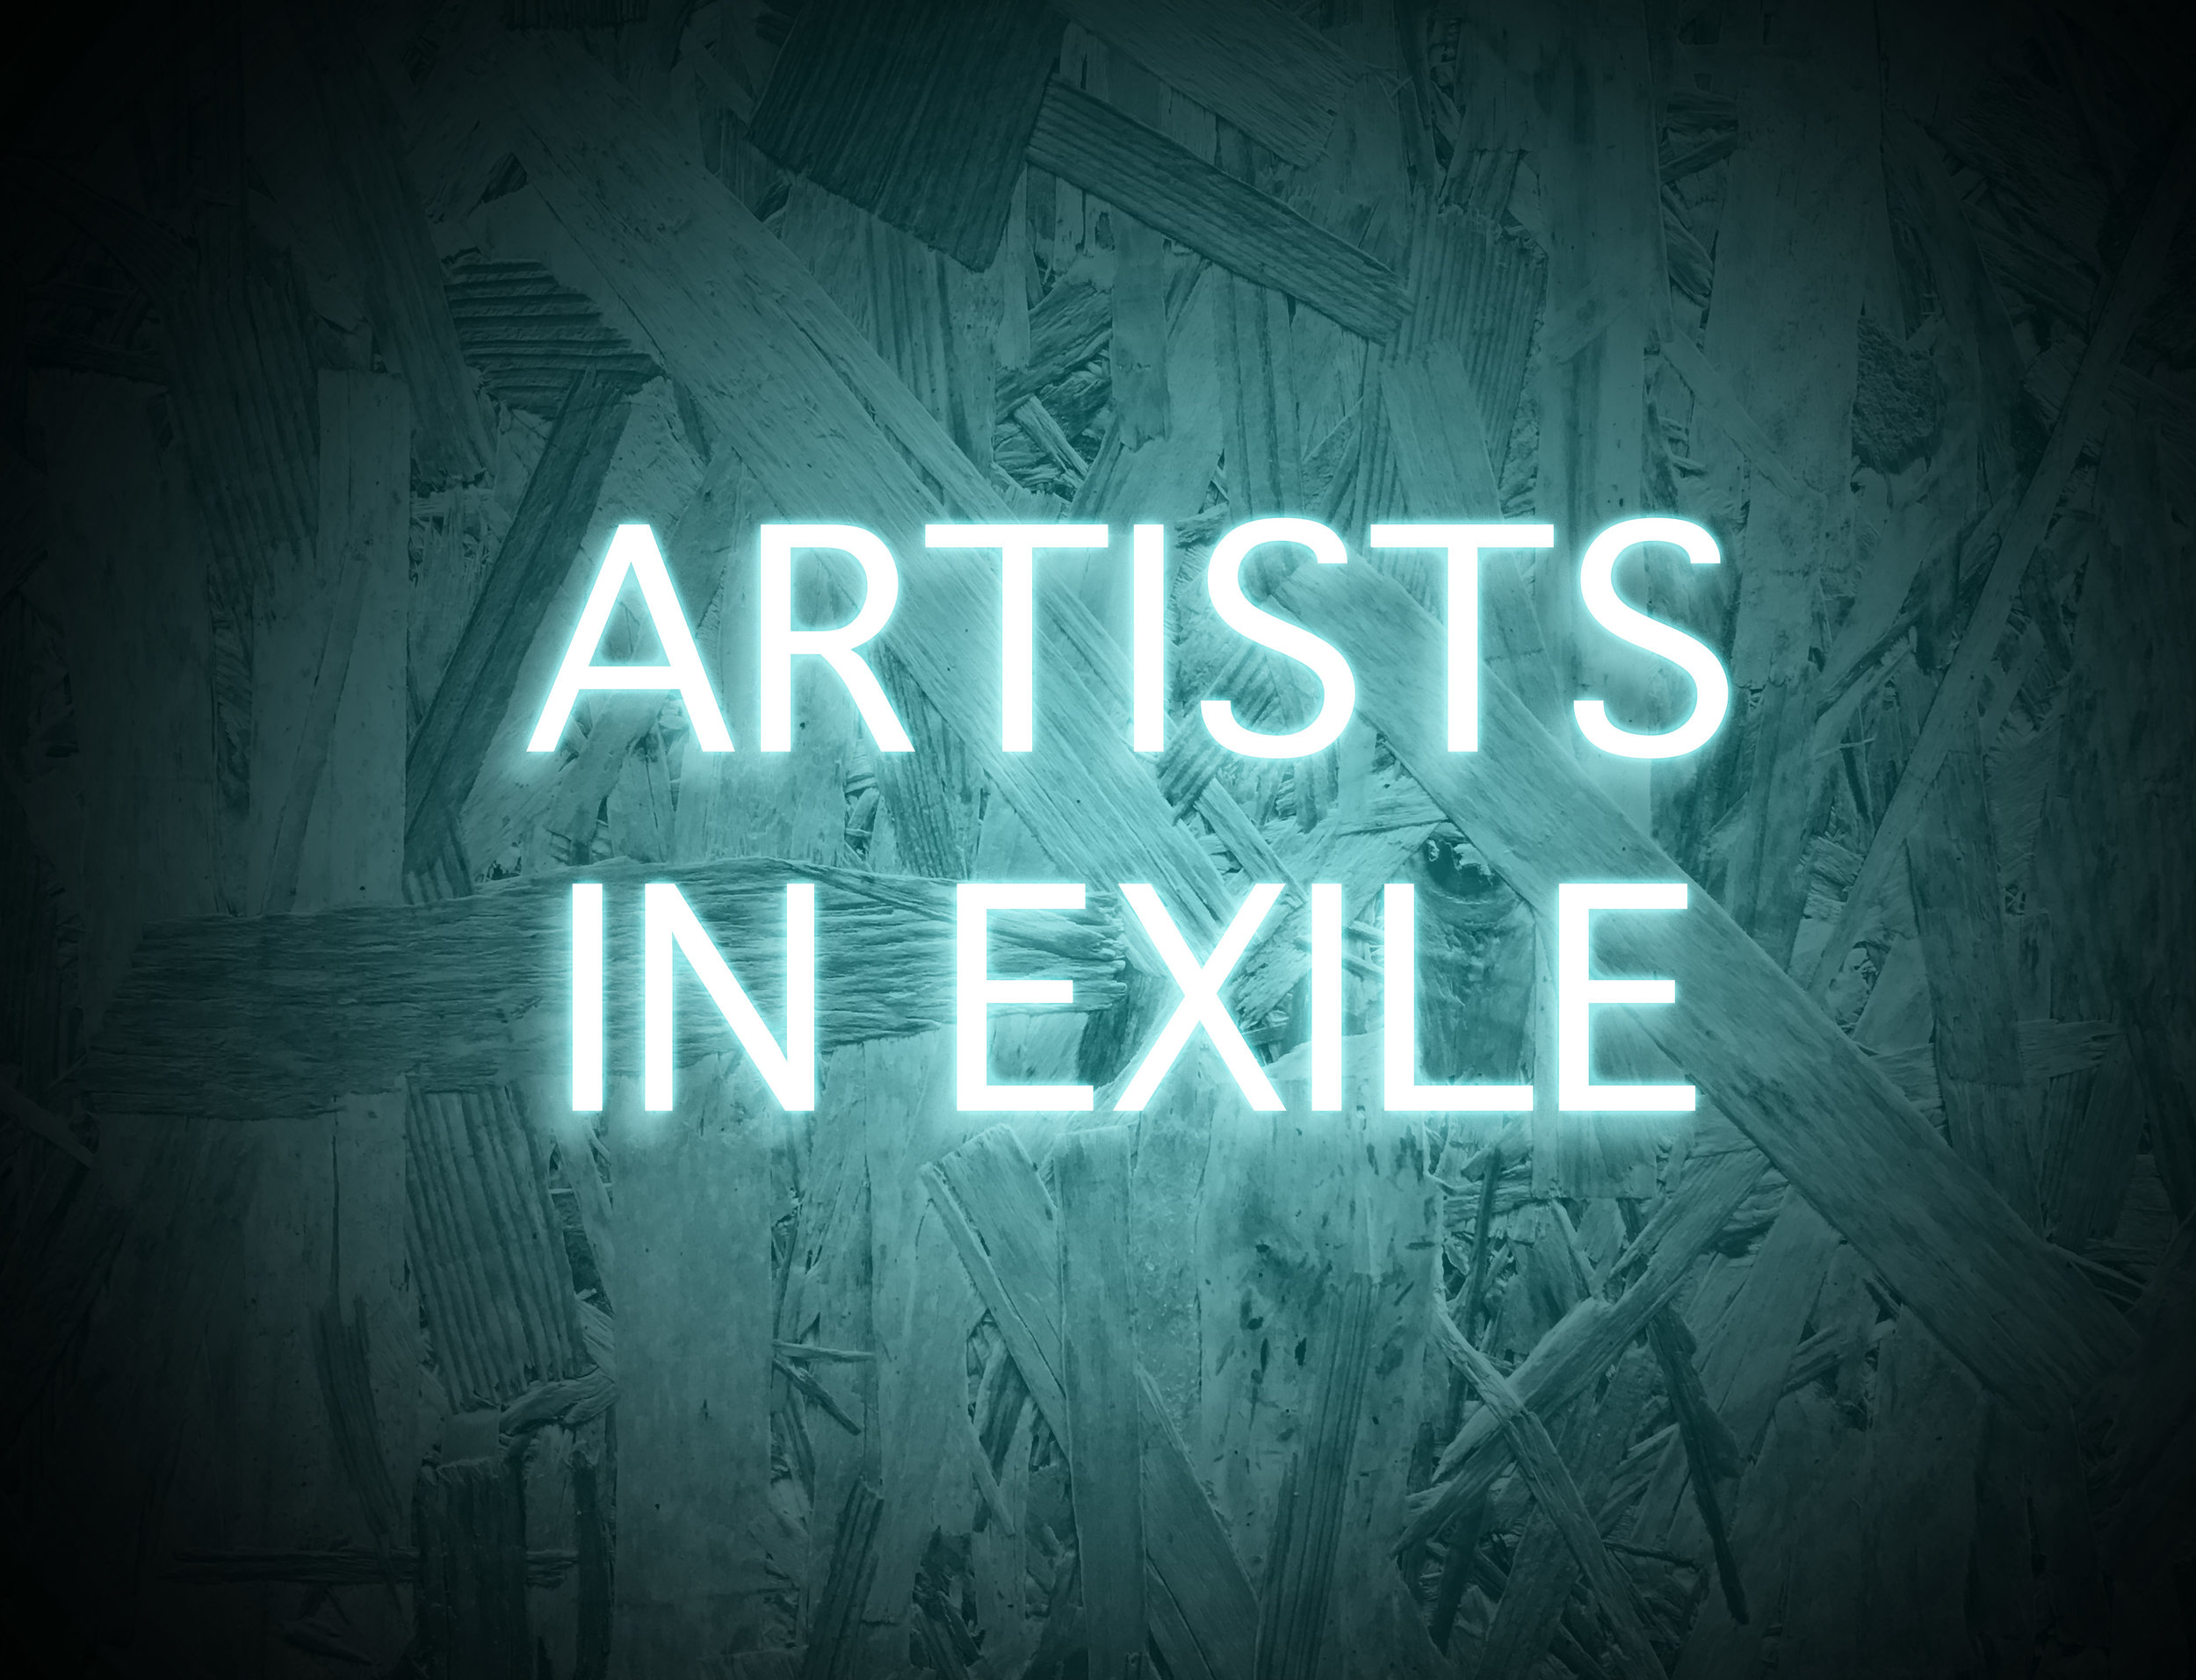 artists in exile poster 2.jpg